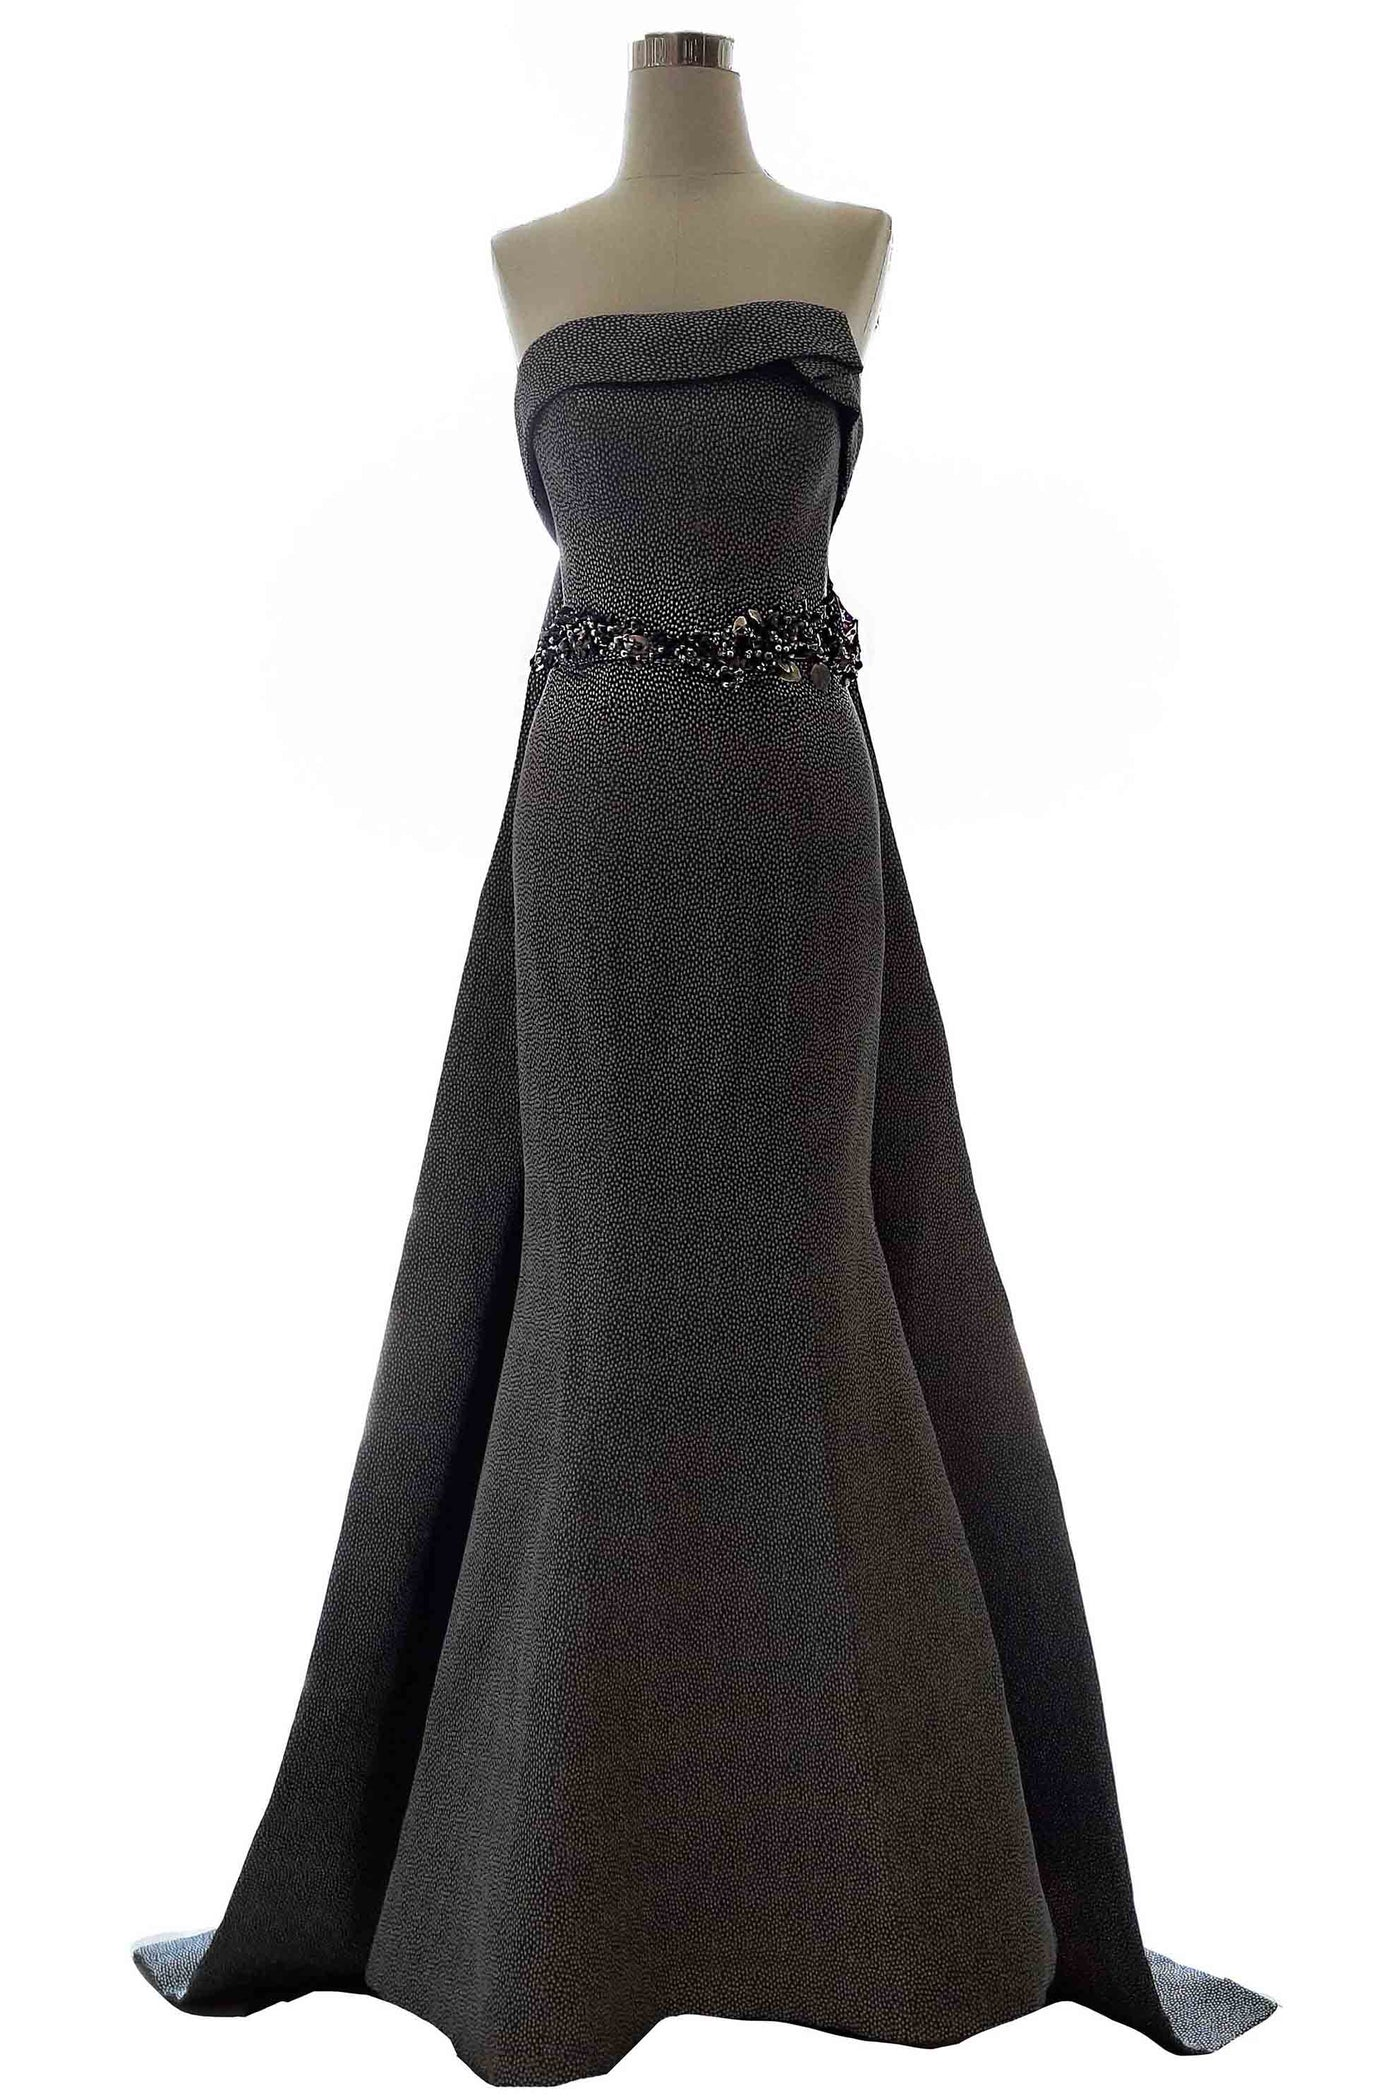 Rent: Stella Lunardy - Strapless Dark Grey A Line Dress With Brooch